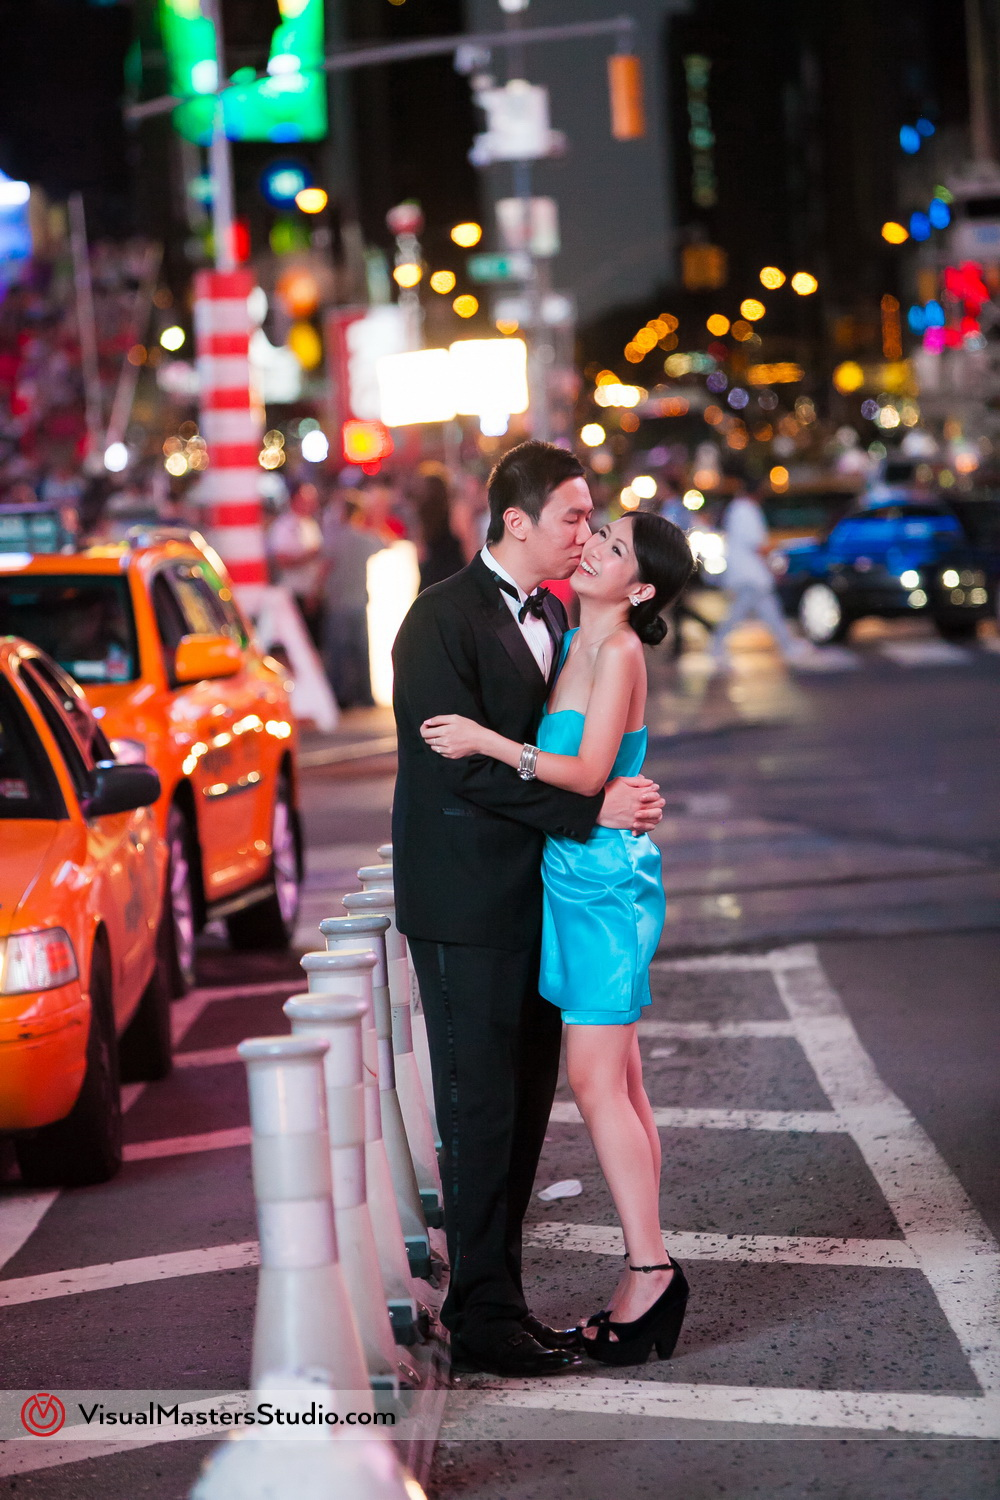 Times Square Bridal Session at Night by Visual Masters